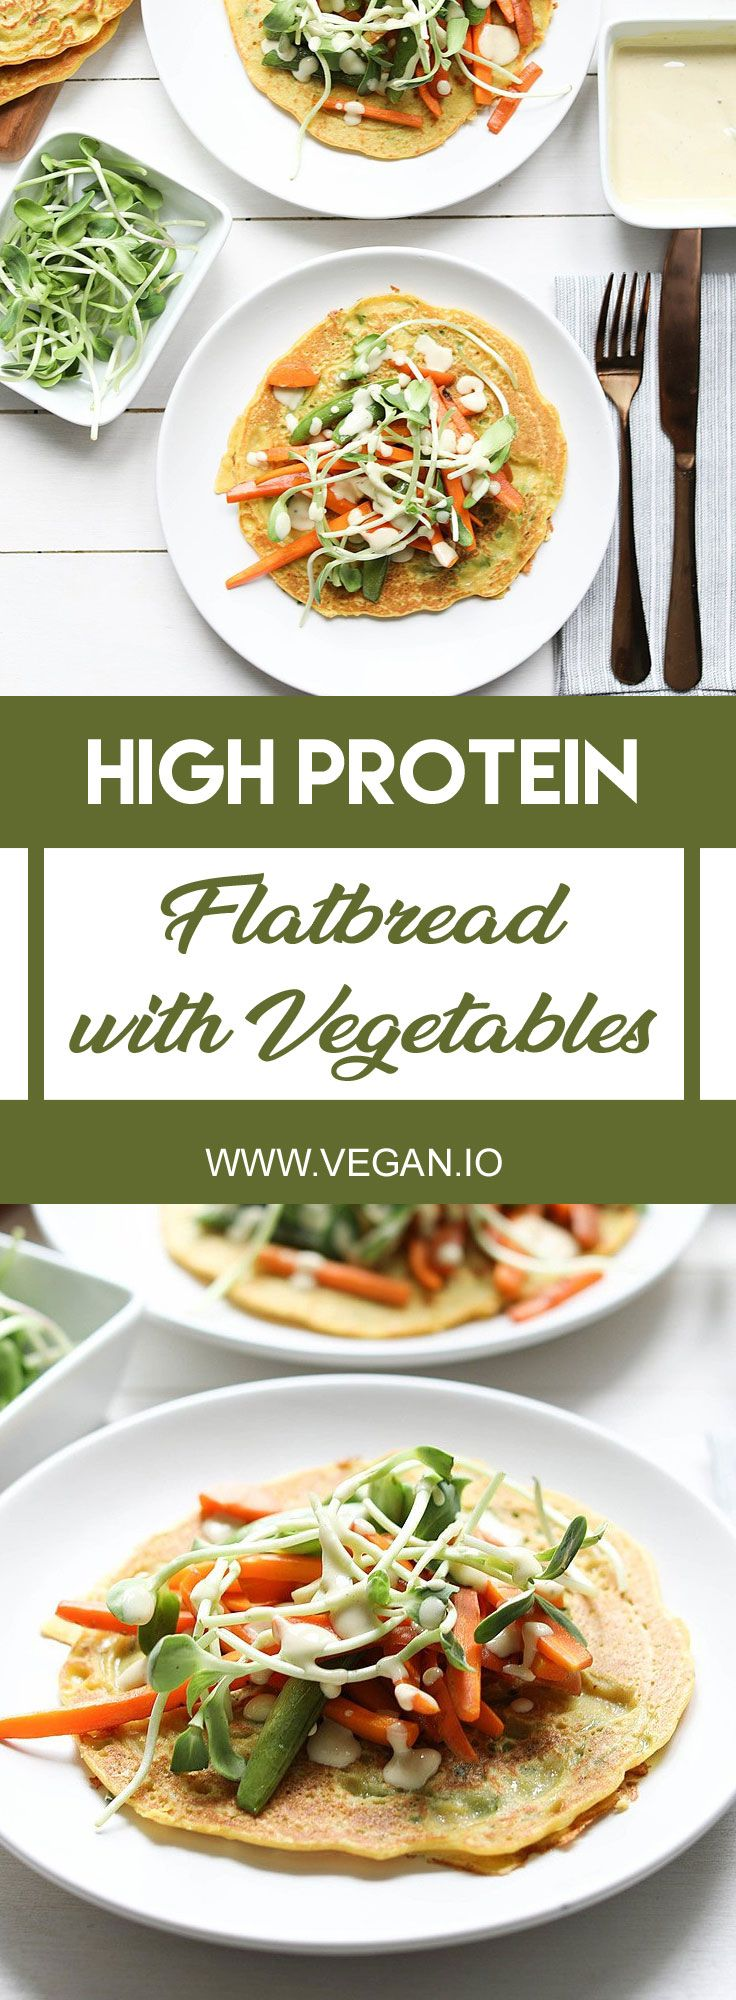 High Protein Flatbread With Vegetables